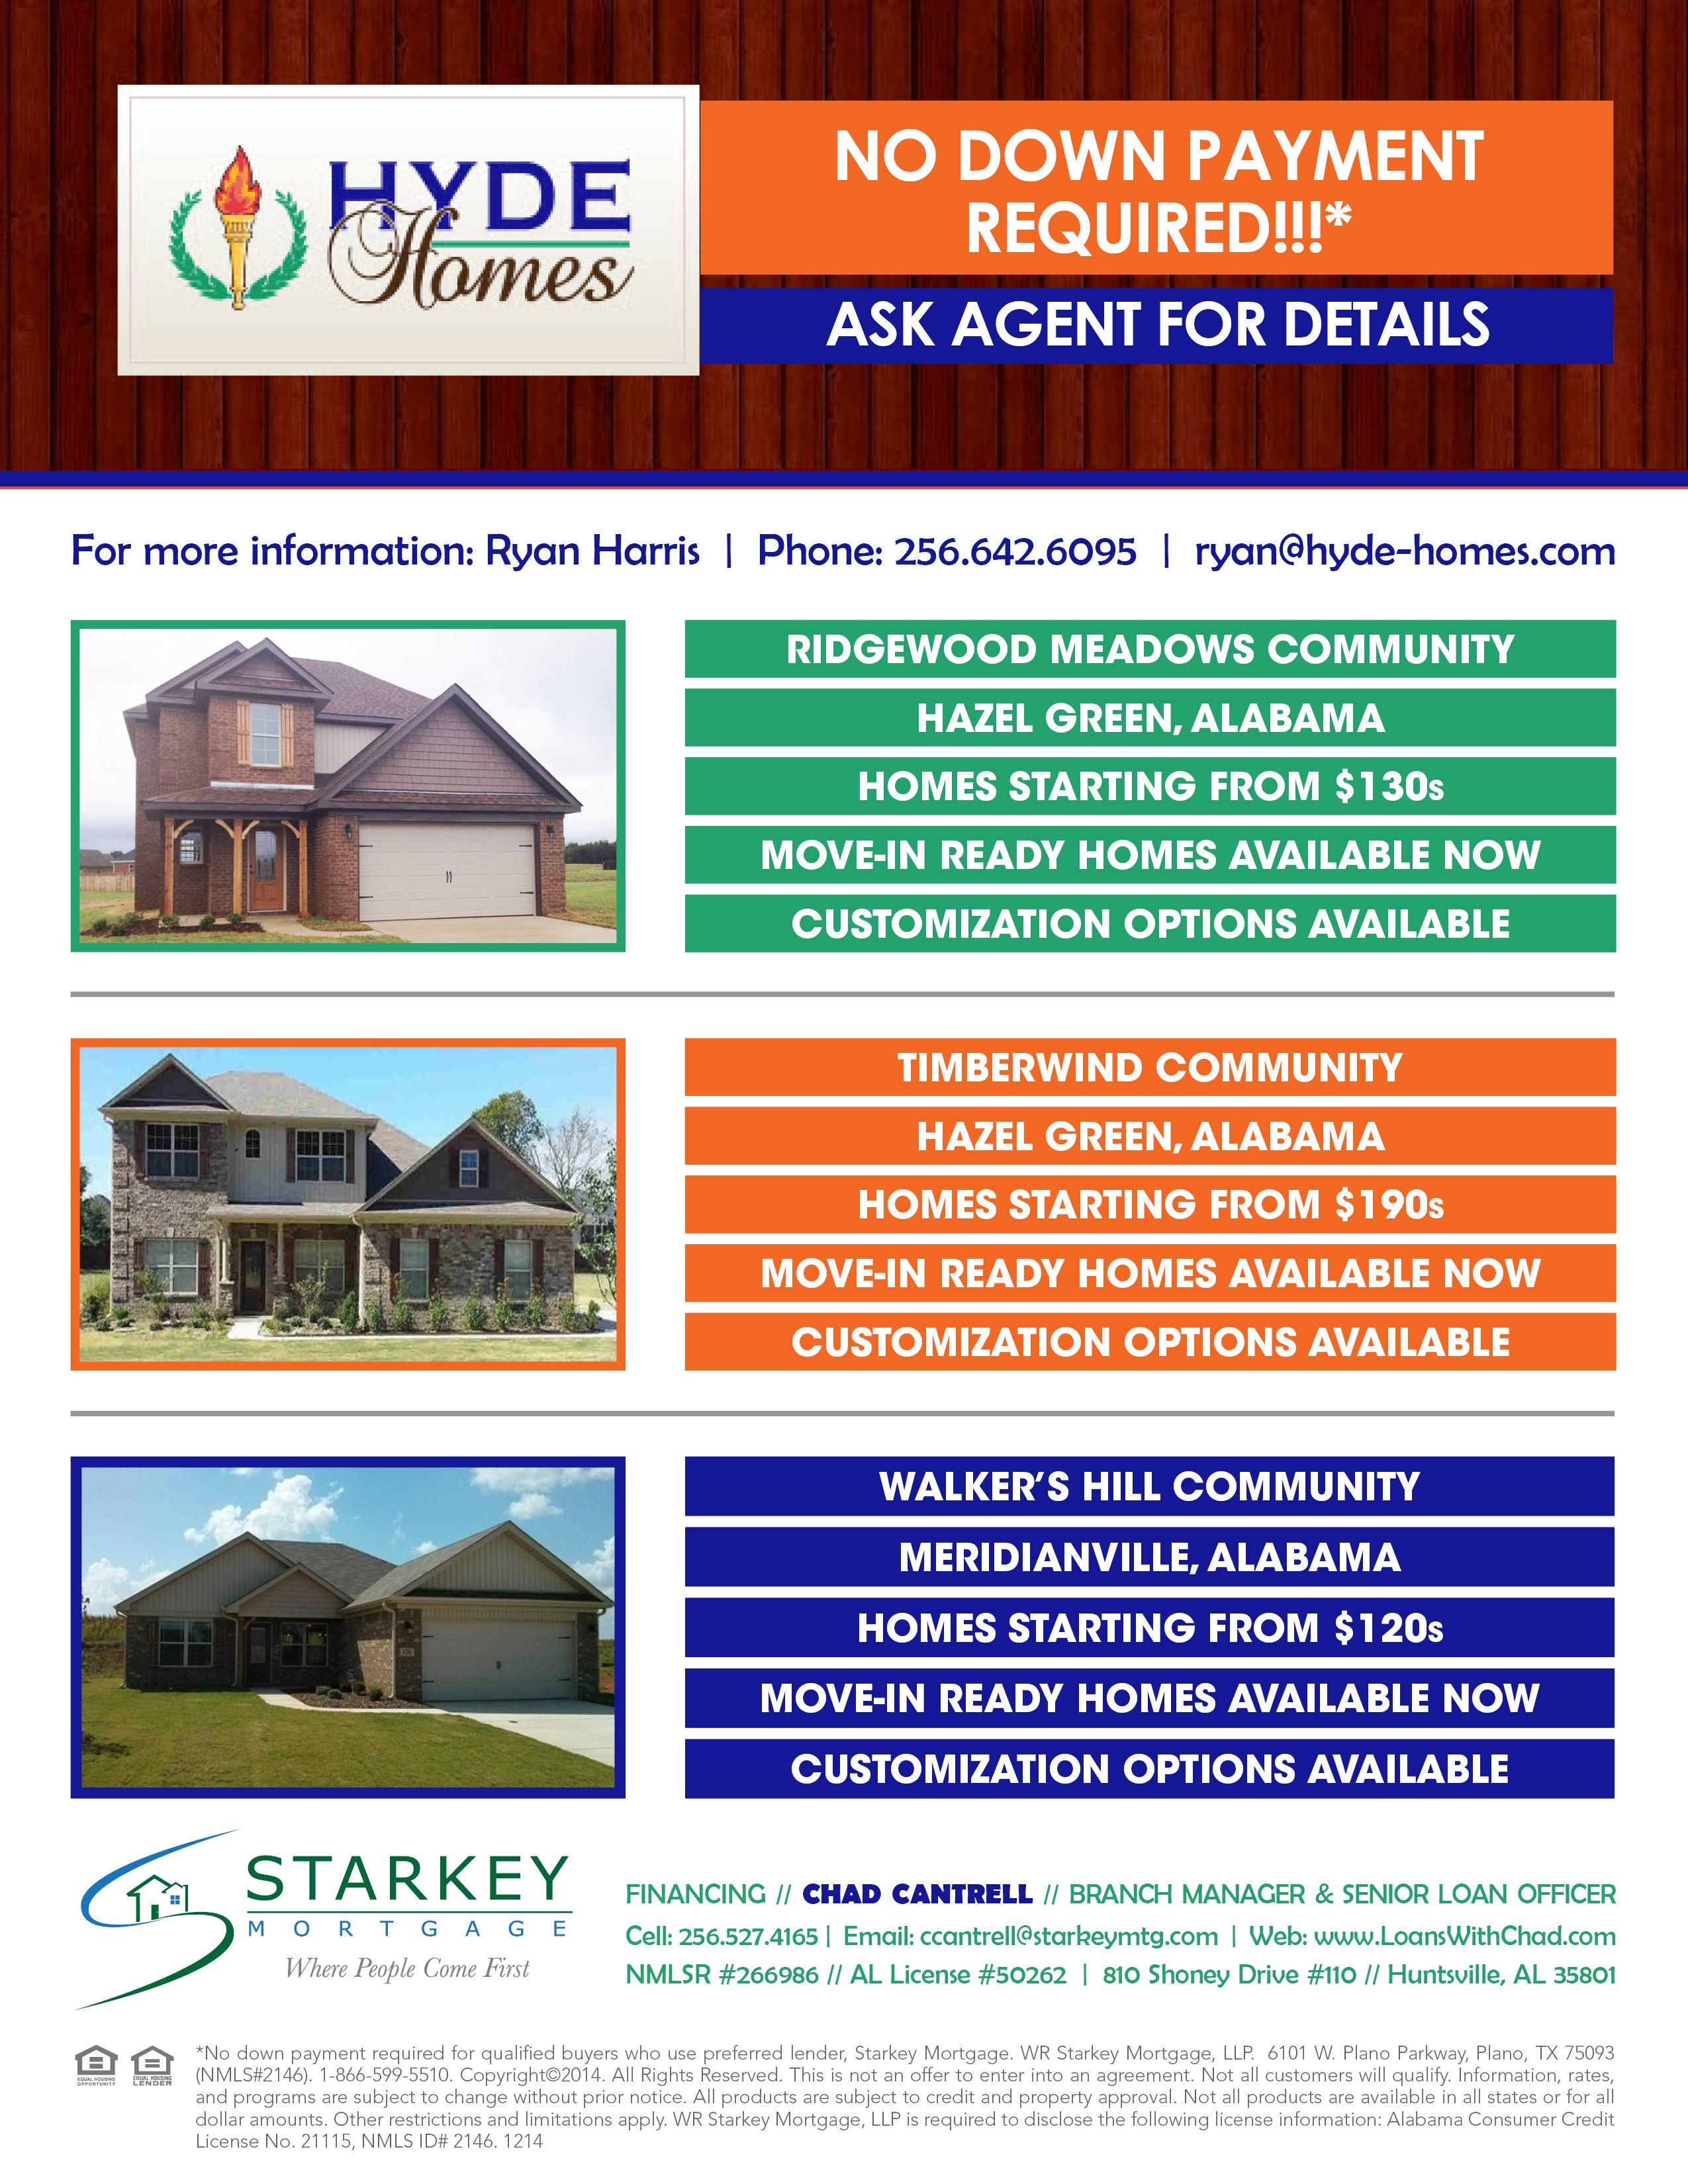 hyde homes real estate flyer design home purchase flyer graphic